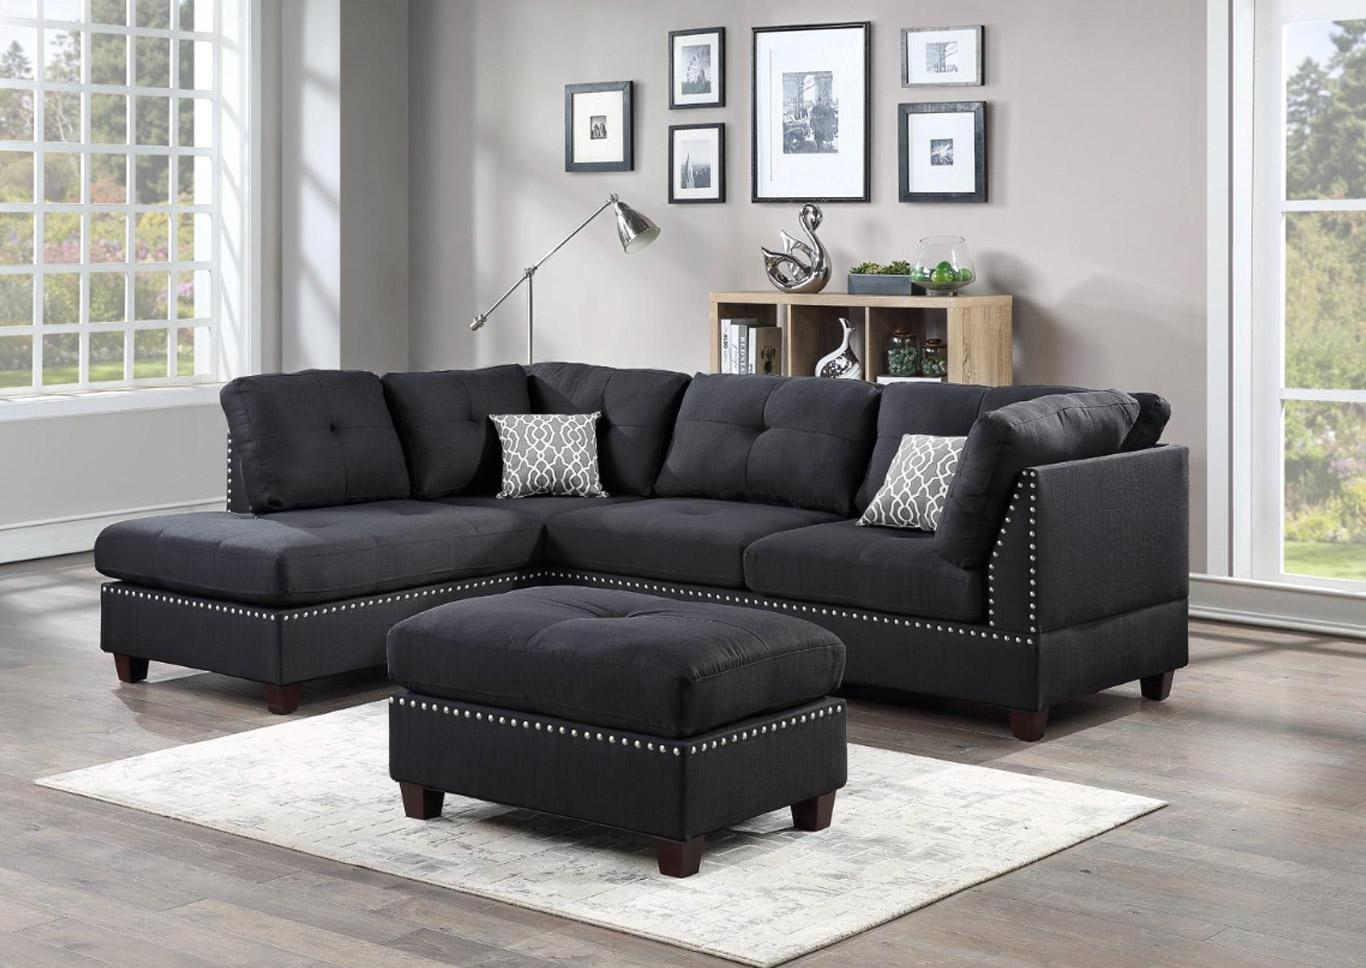 Dark Sectional - Free Ottoman with Purchase,Harlem In-Store